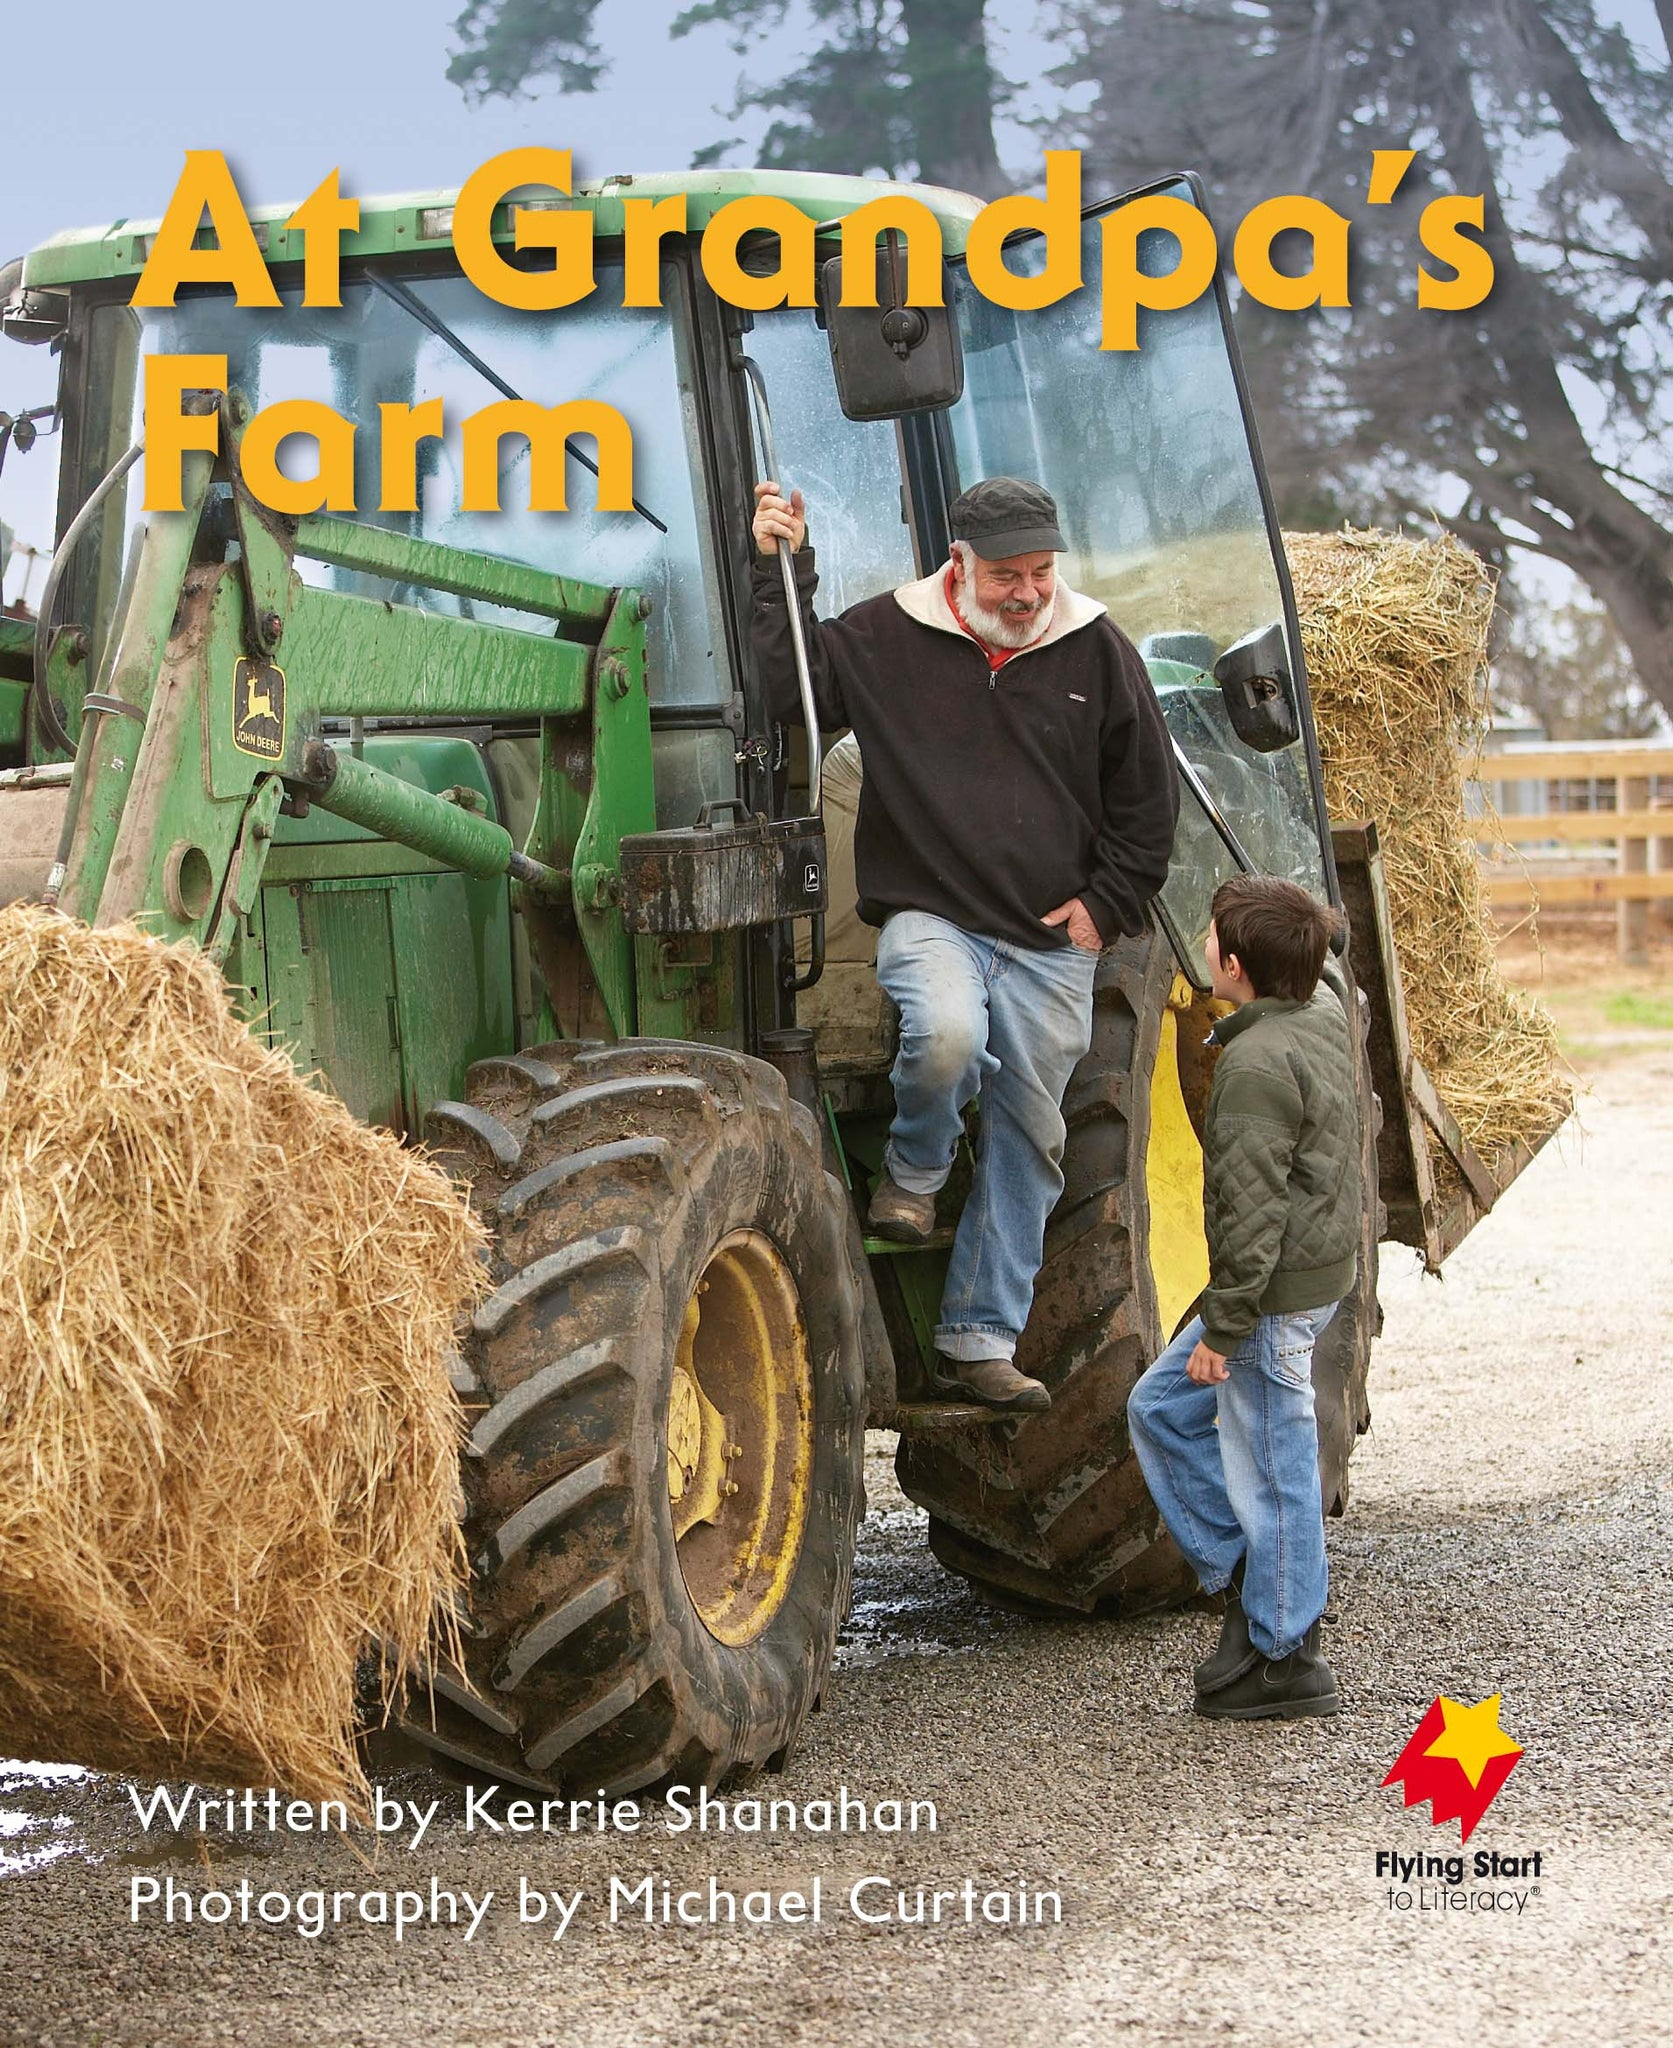 FS Level 4: At Grandpa's Farm